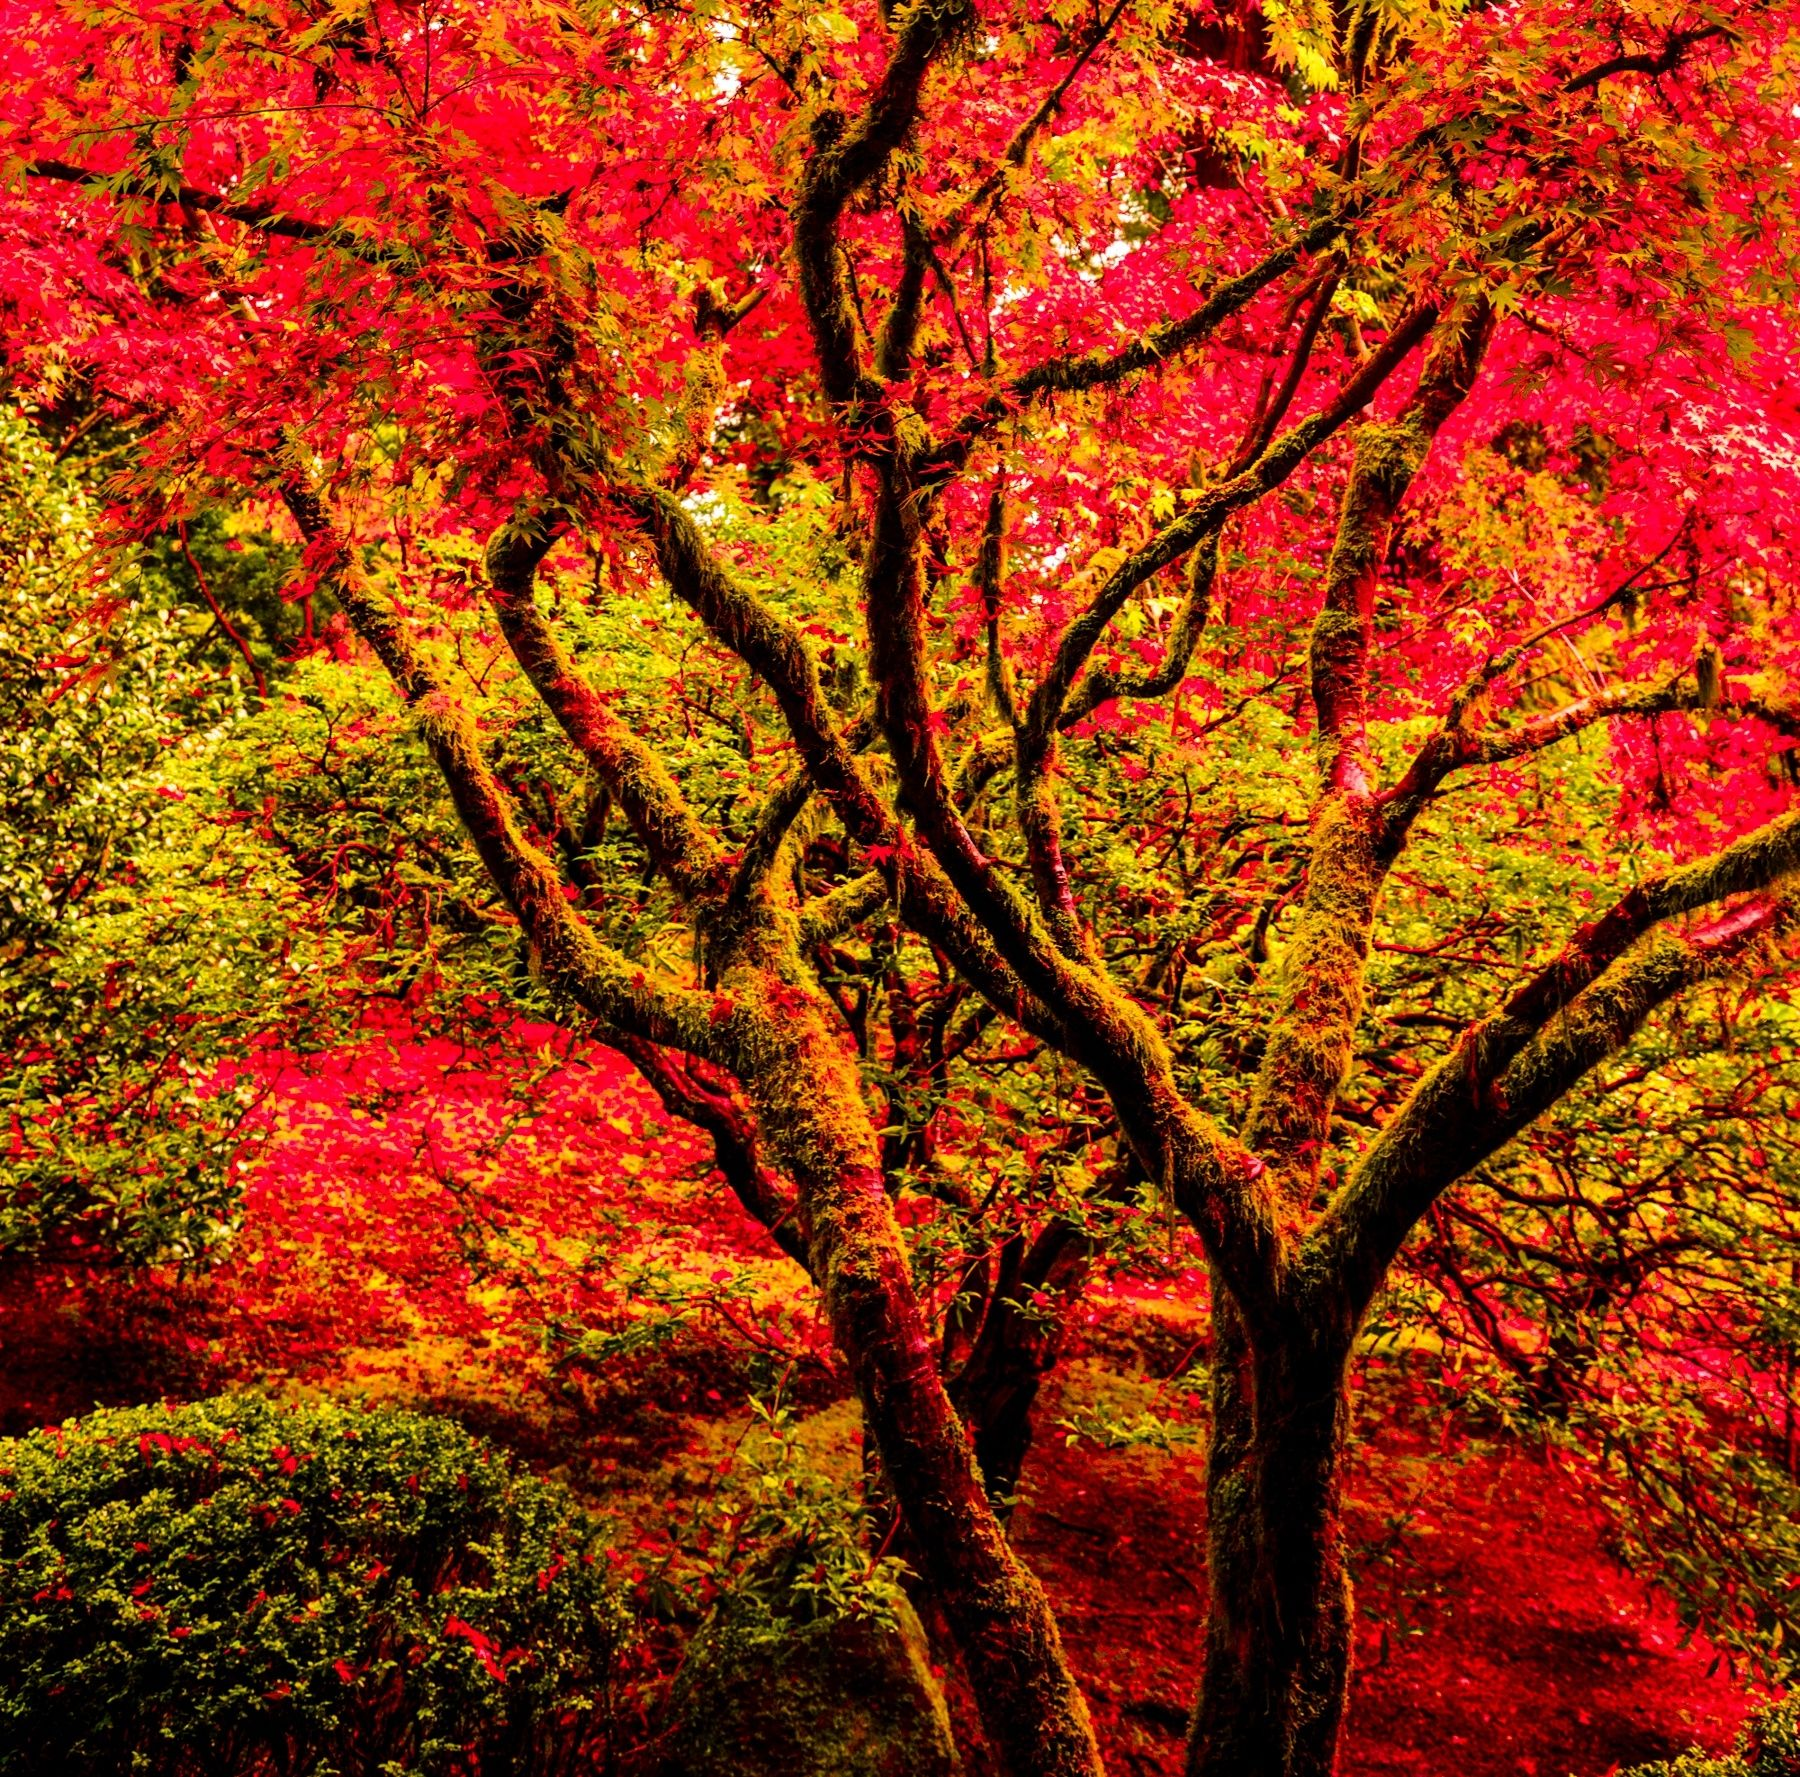 portland japanese garden red maple trees In the darkness